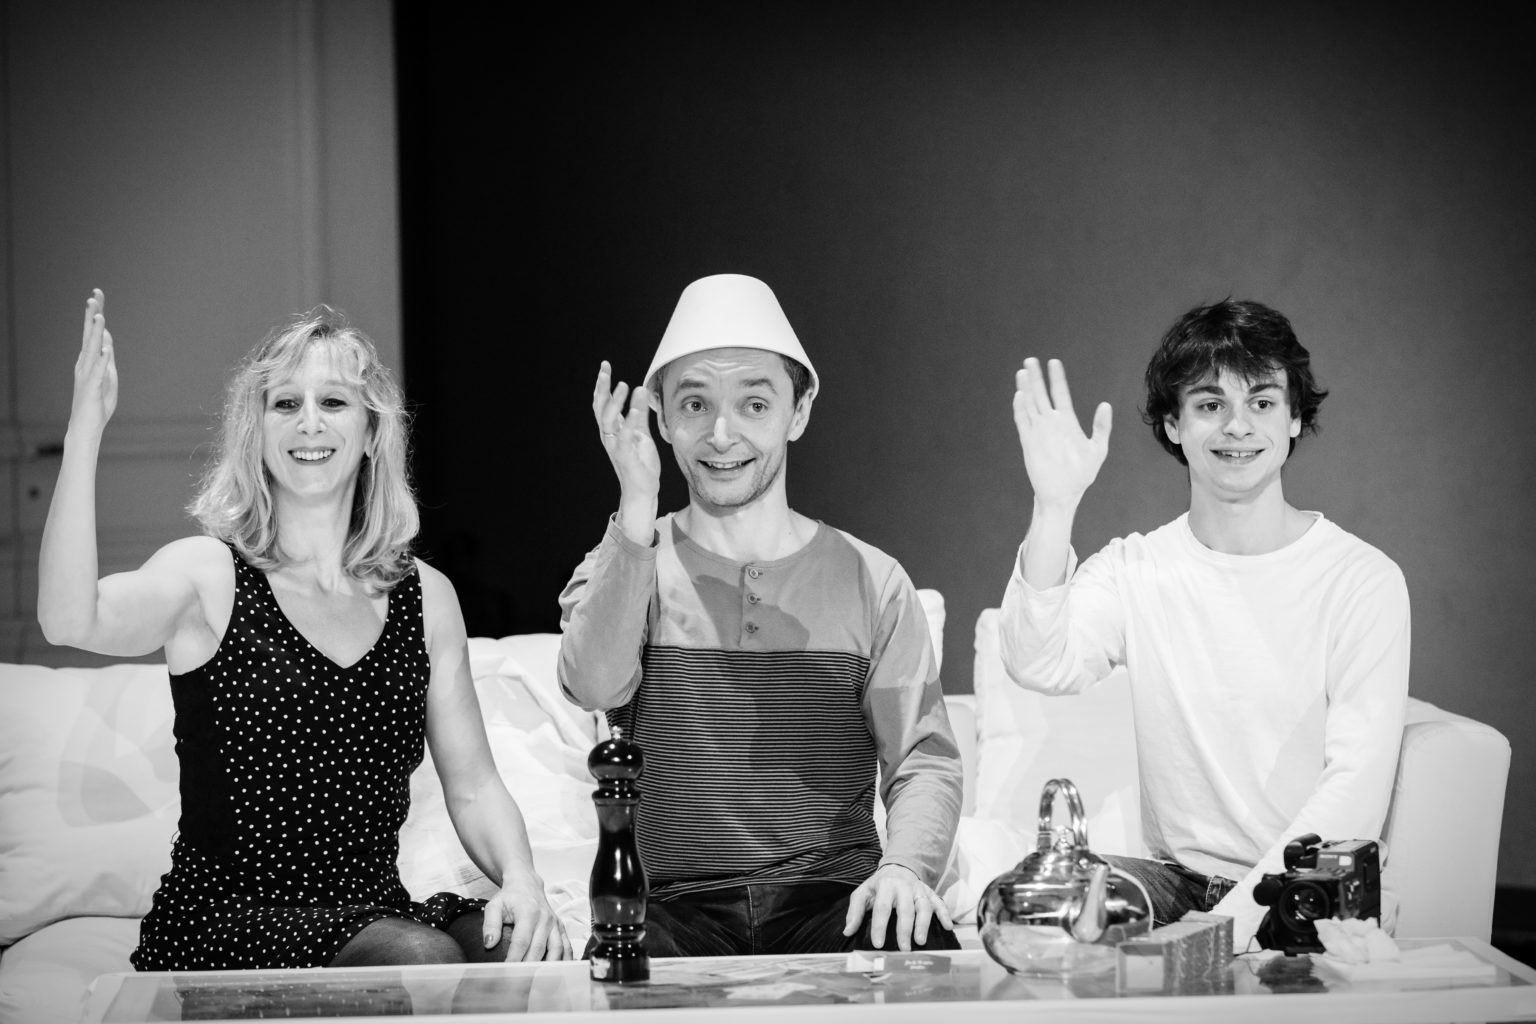 Ubu Roi rehearsal photography (copyright Johan Persson)